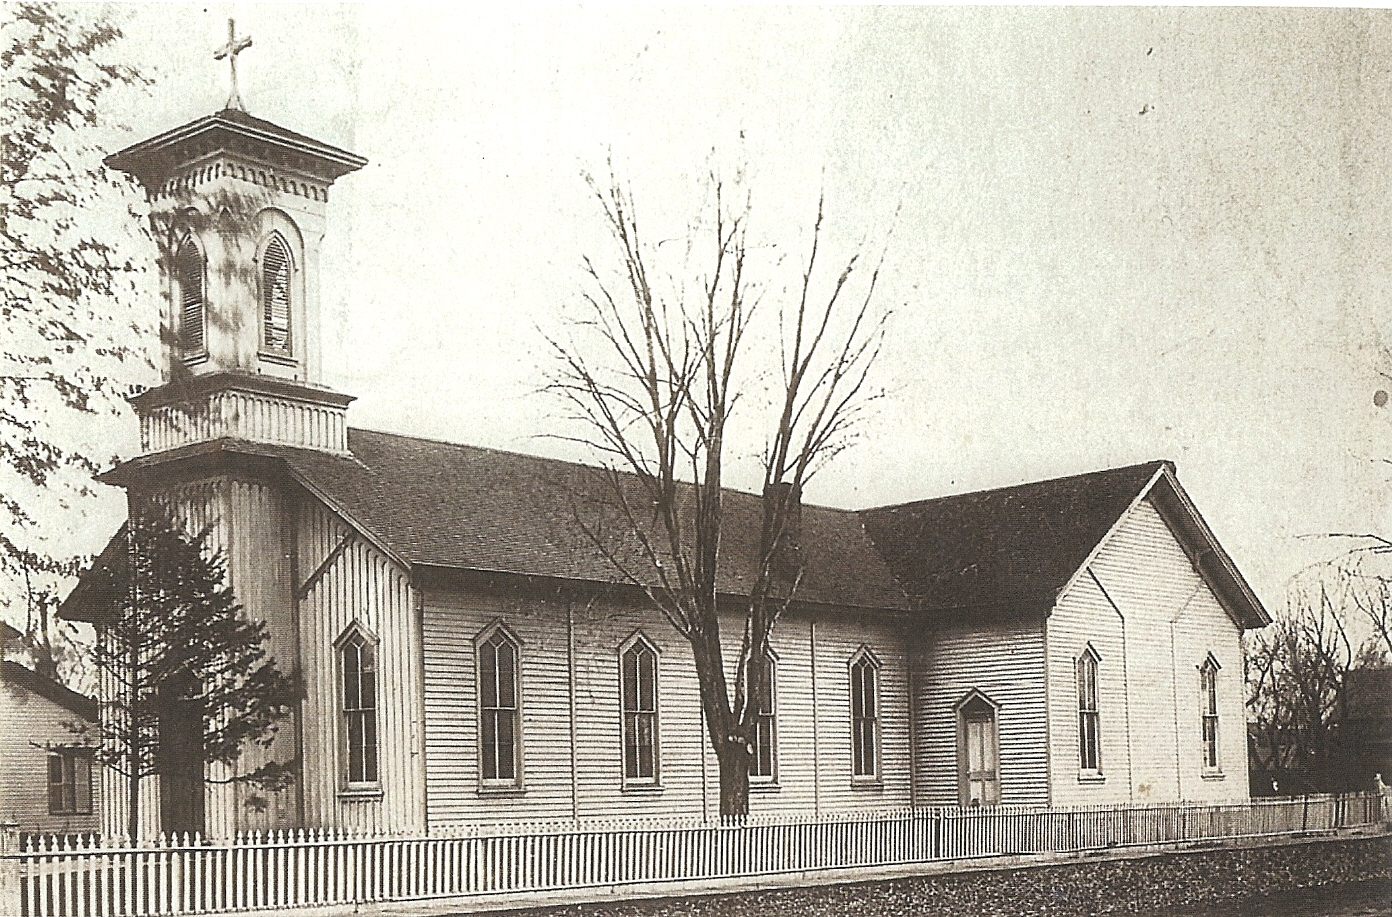 St. Mary's Original Church - Birth and Baptismal